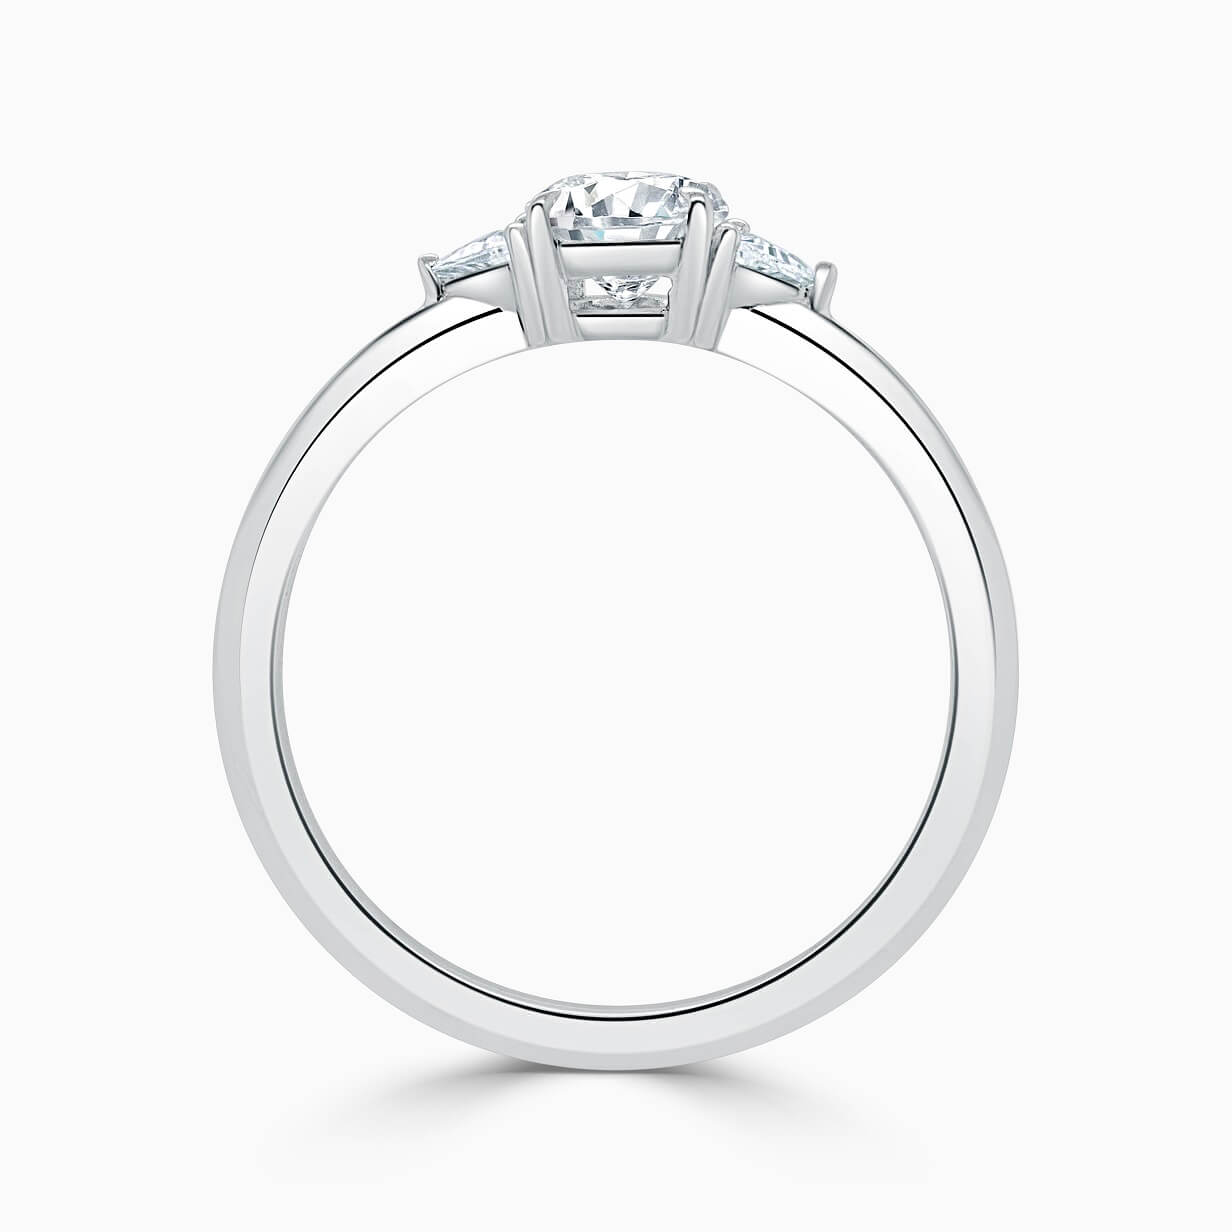 Platinum Oval Shape 3 Stone With Trillions Engagement Ring